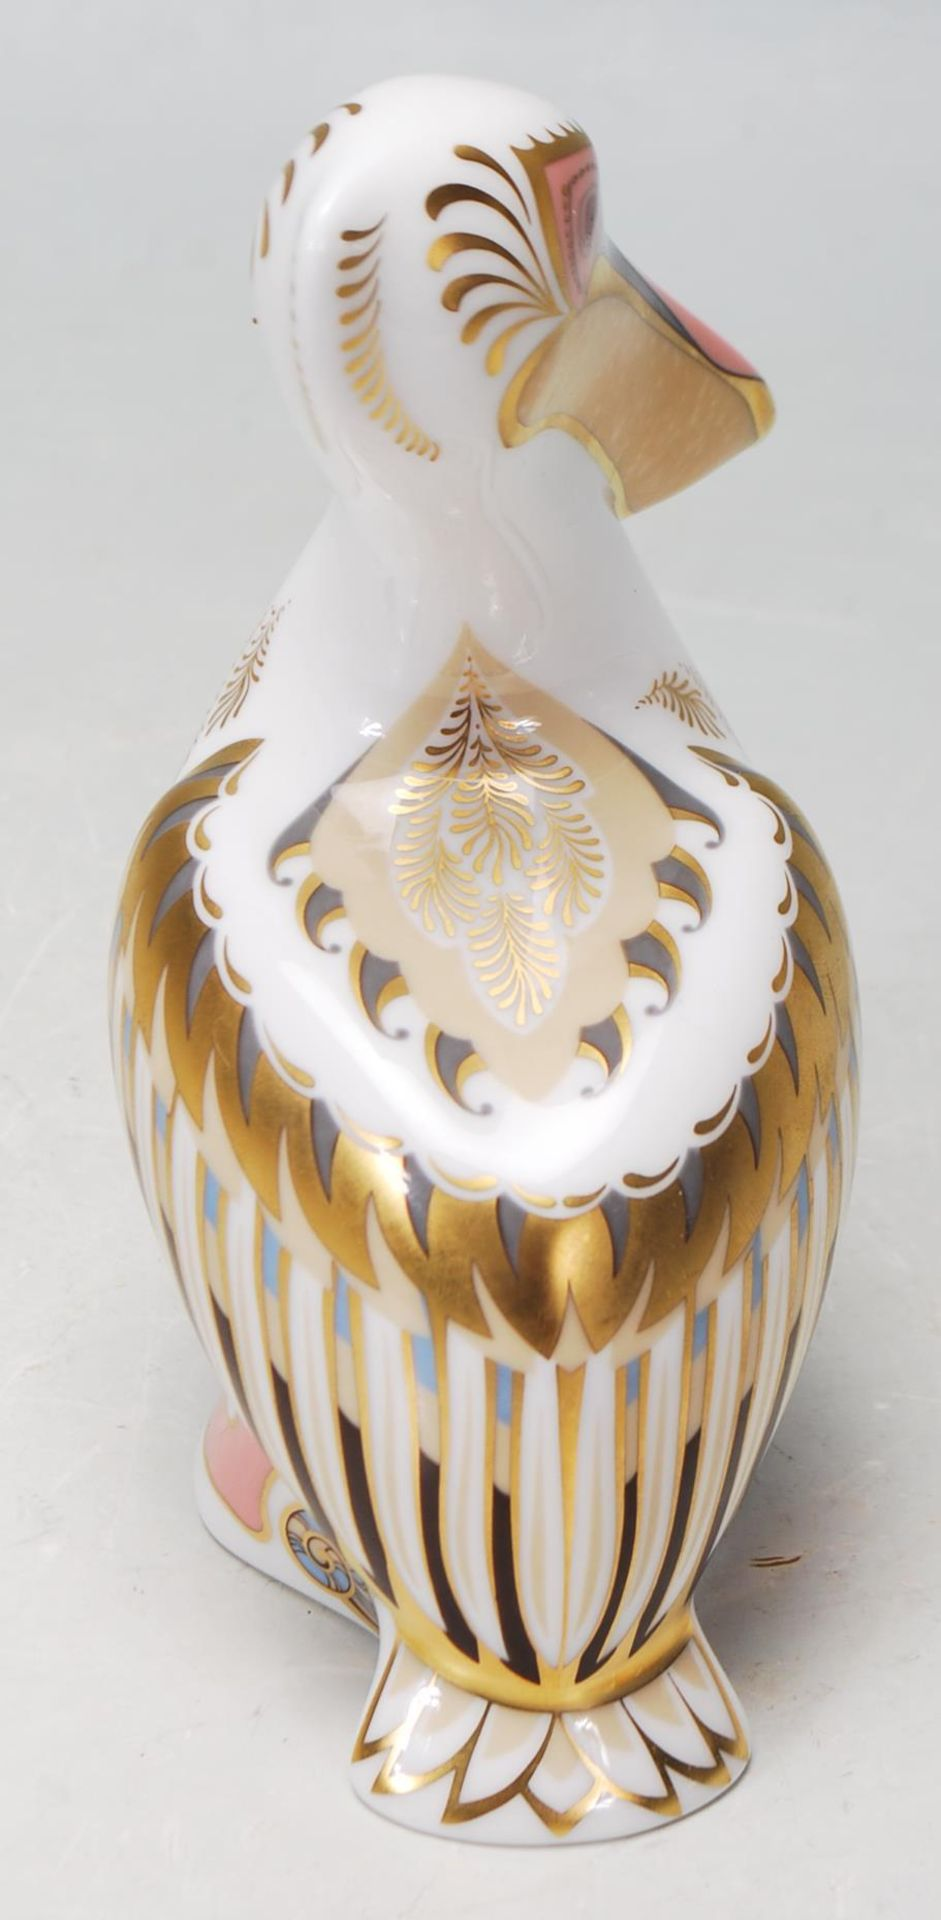 ROYAL CROWN DERBY WHITE PELICAN PAPERWEIGHT WITH GOLD STOPPER - Image 3 of 5